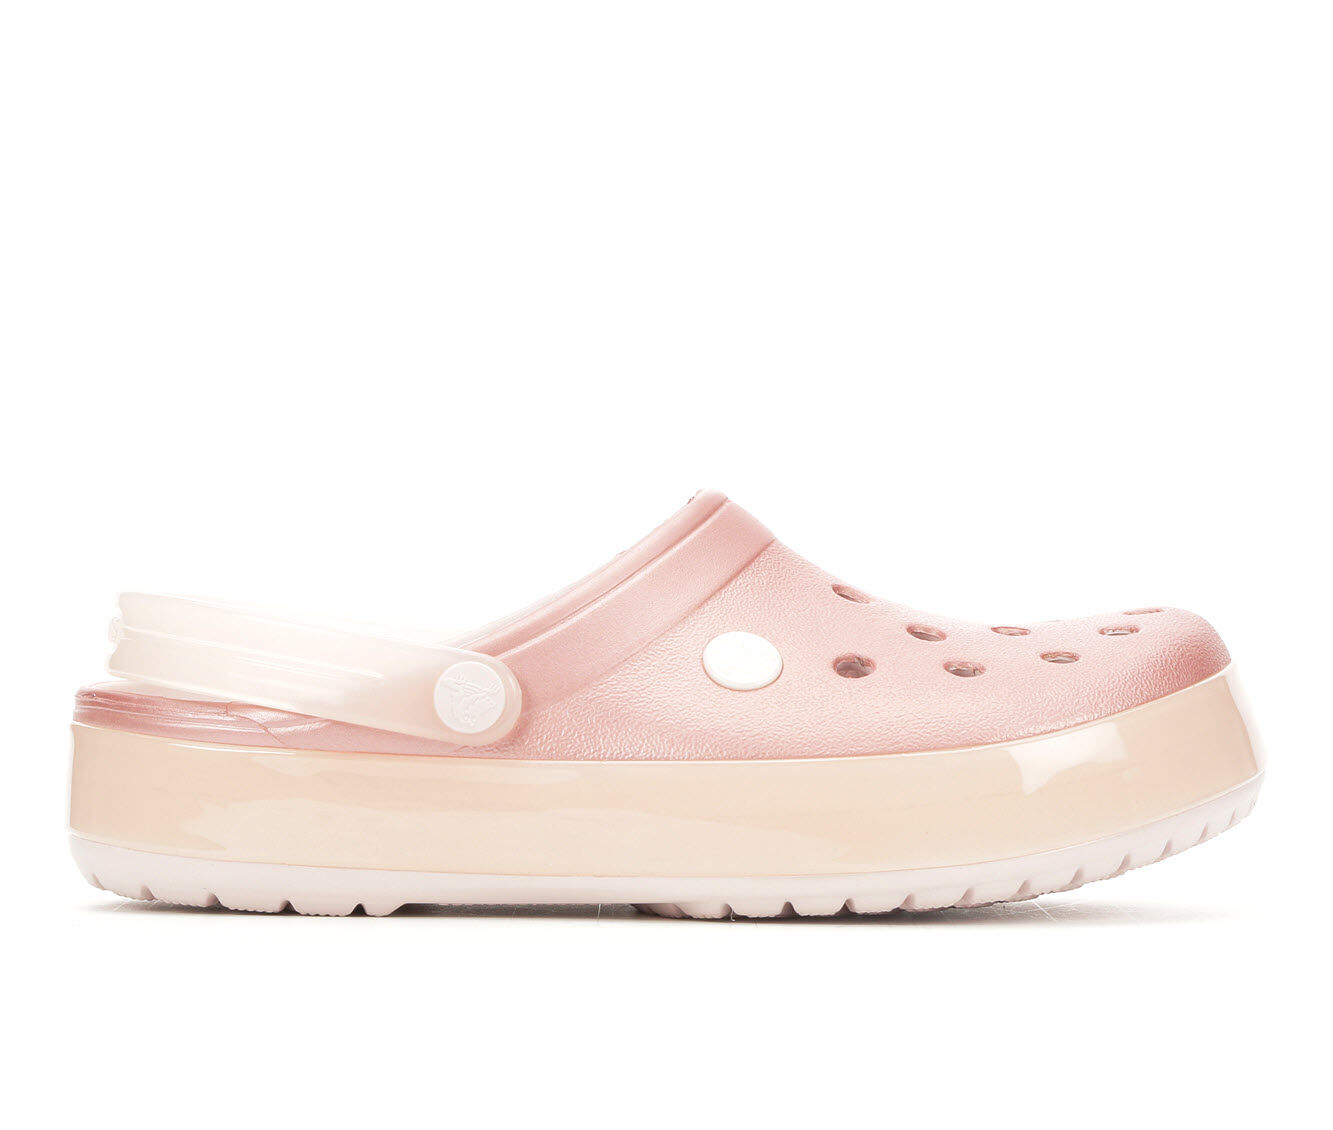 best price Women's Crocs Crocband Ice Clog Barely Pink